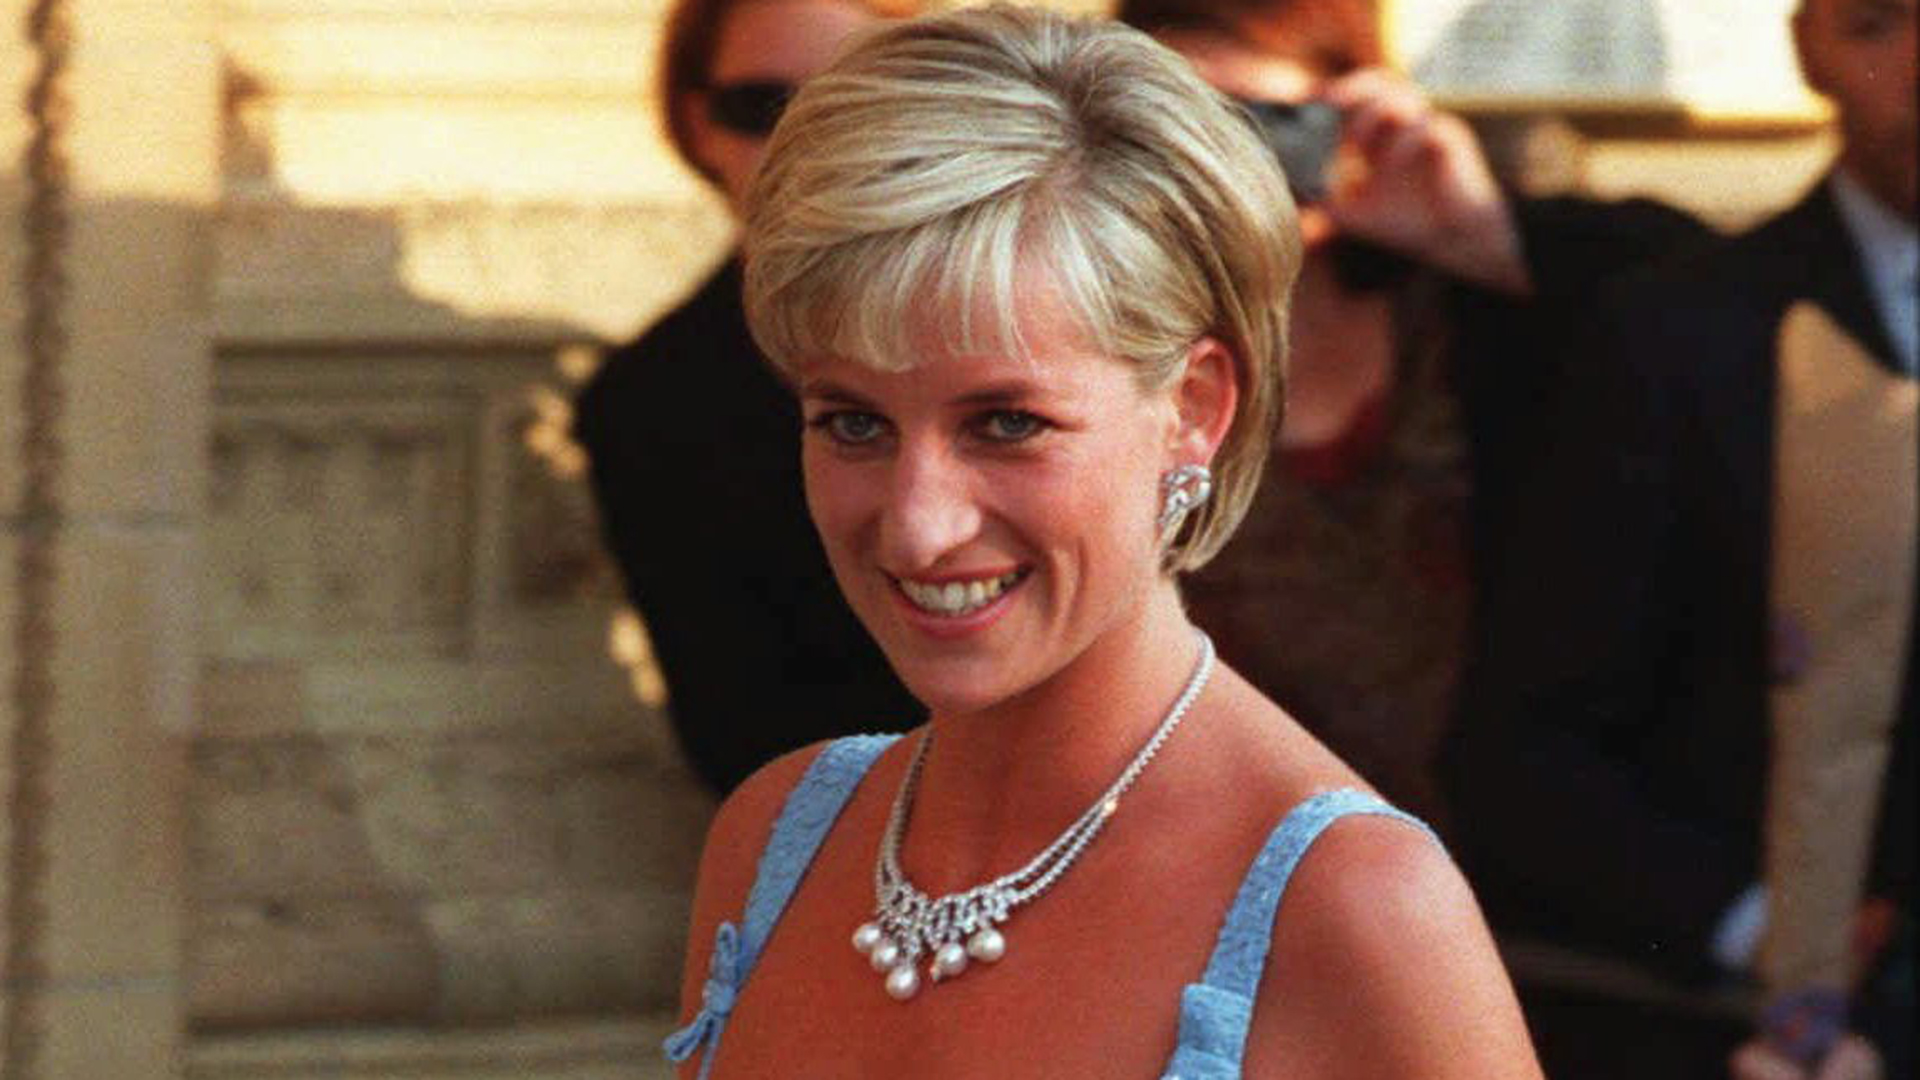 princess diana and her death The death of princess diana was immediately followed by an unprecedented outpouring of grief from all over the world her funeral was held in london, five days after her death.